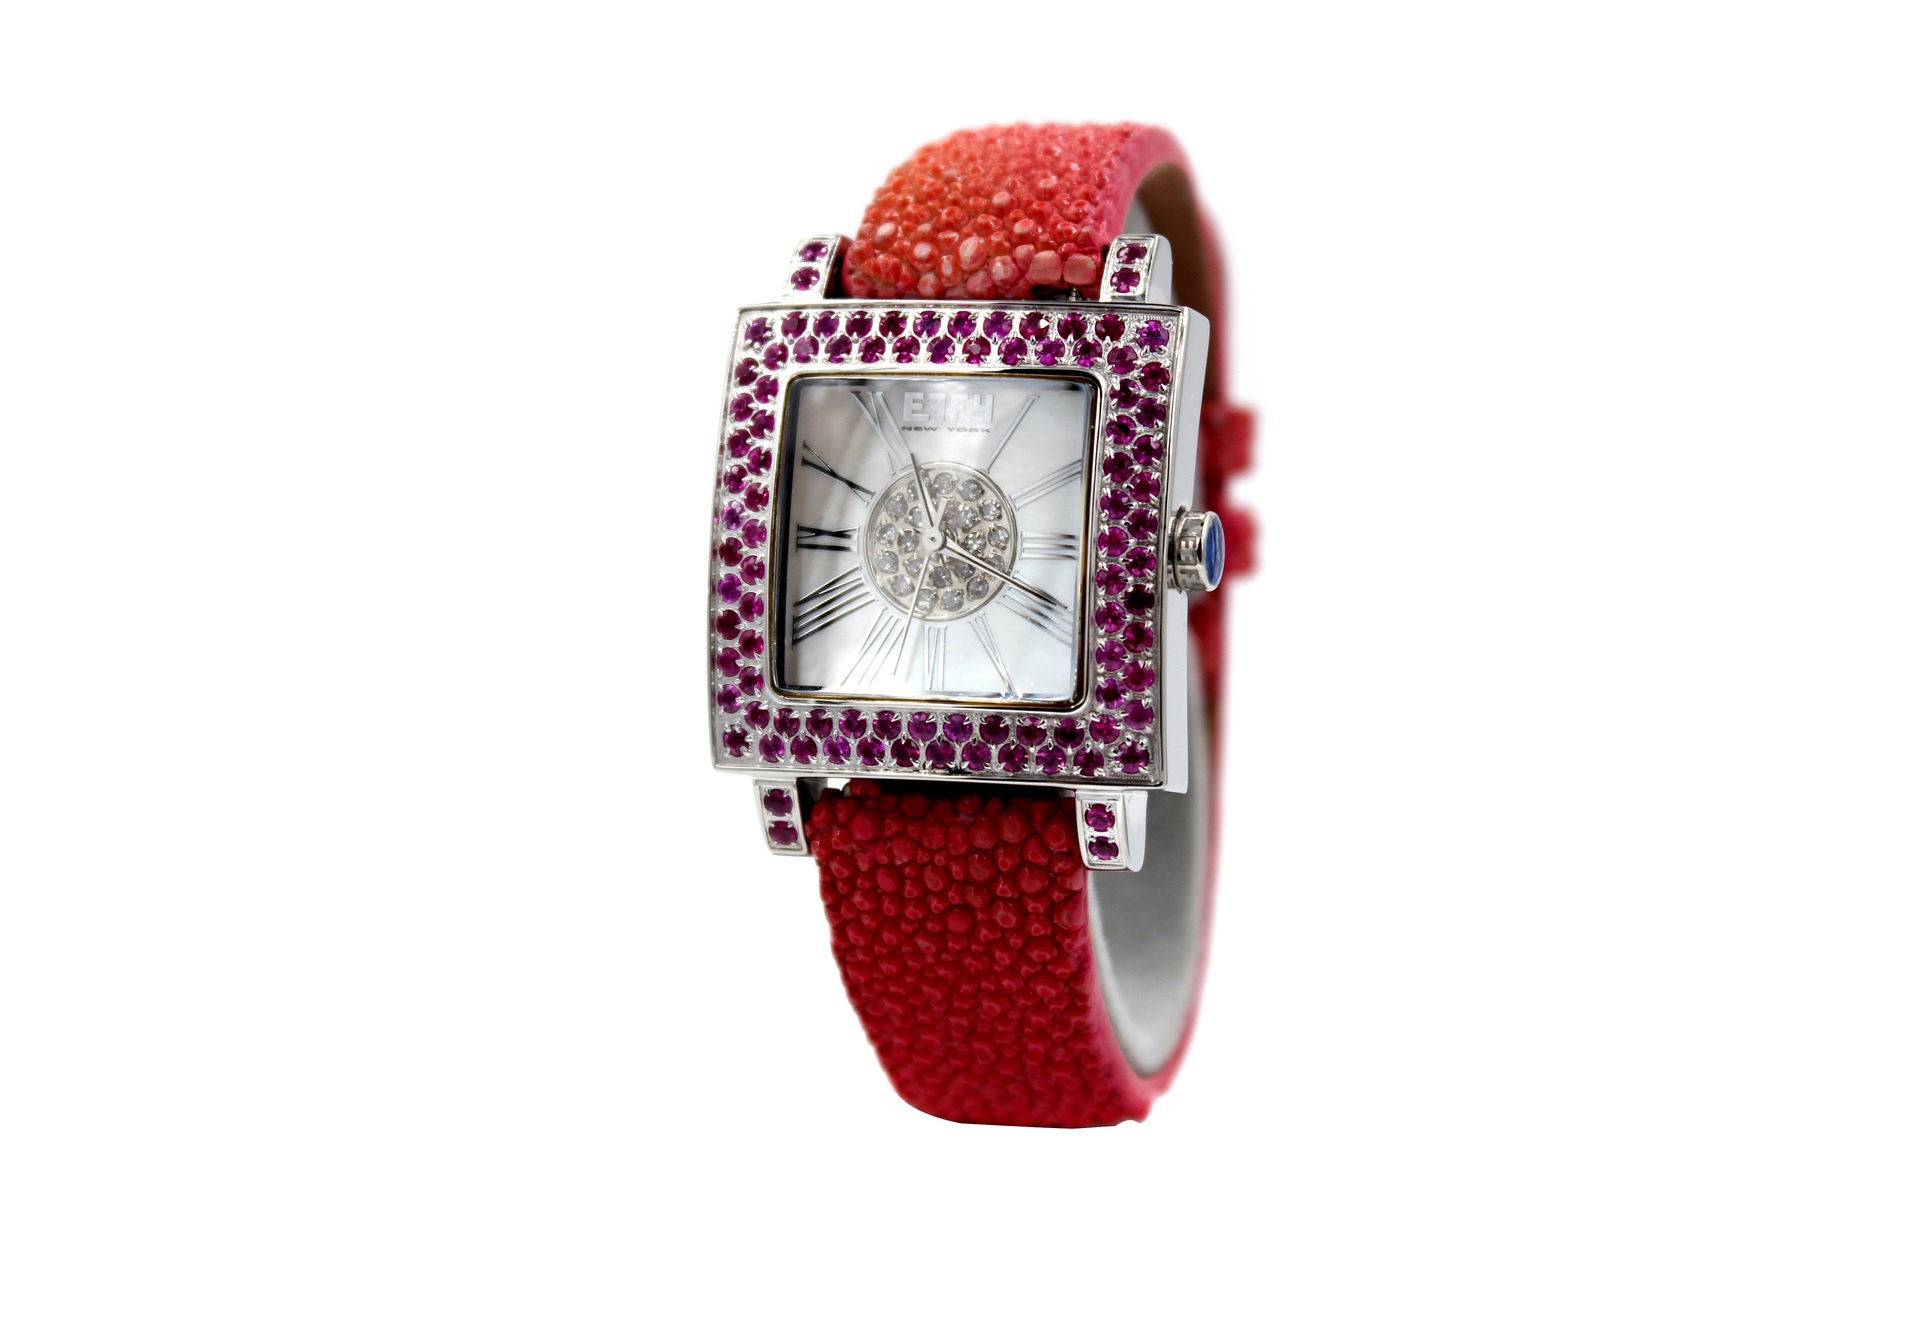 Effy Time SquareAmethyst Mother-of-Pearl Dial Unisex Watch